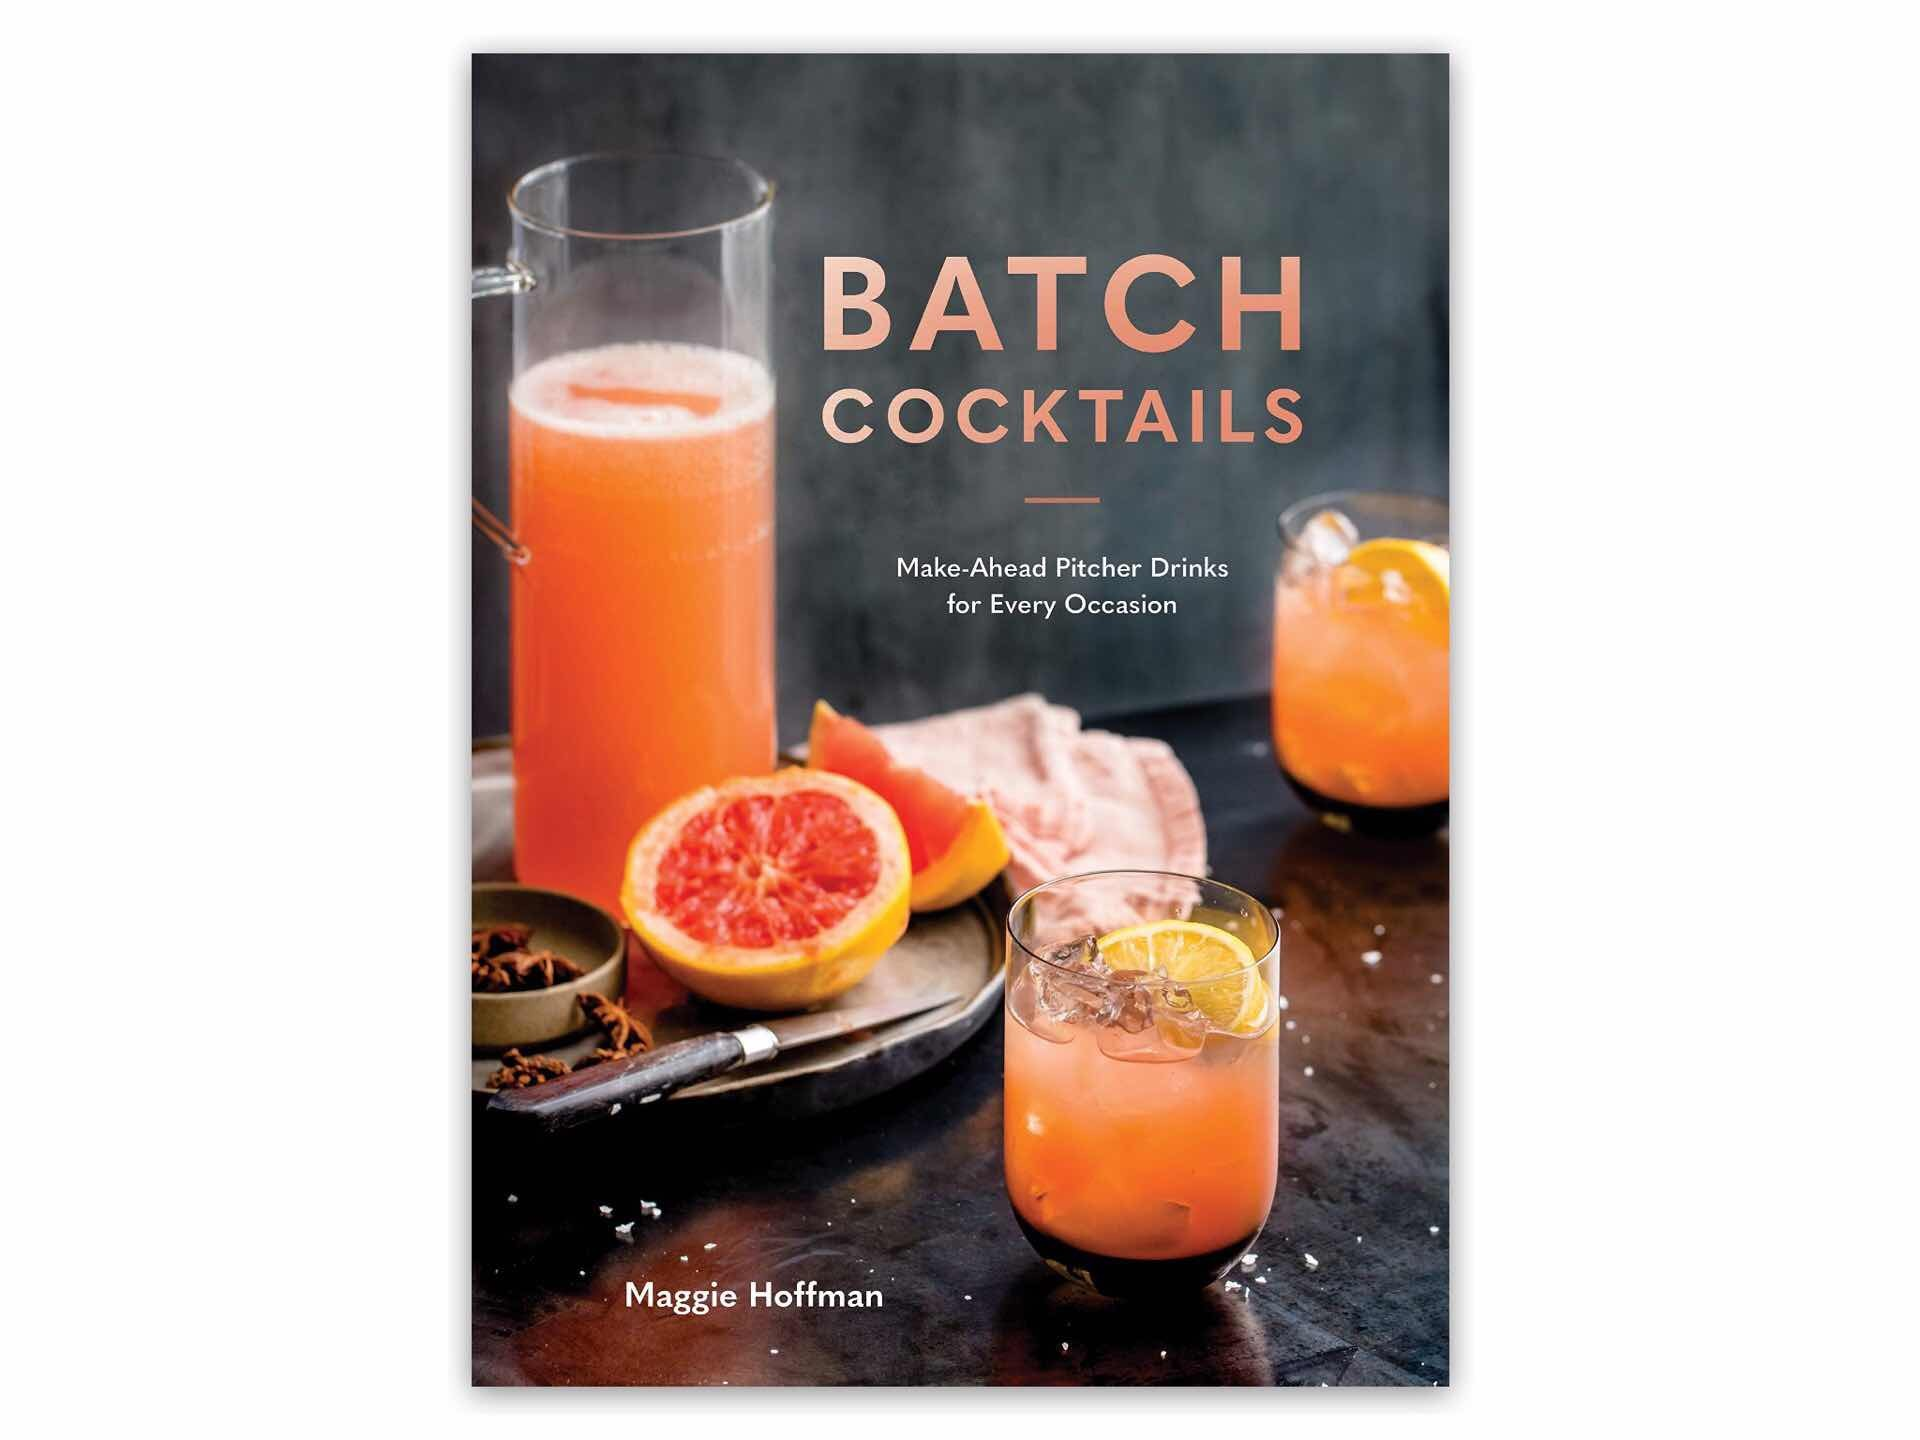 Batch Cocktails by Maggie Hoffman. ($15 hardcover)